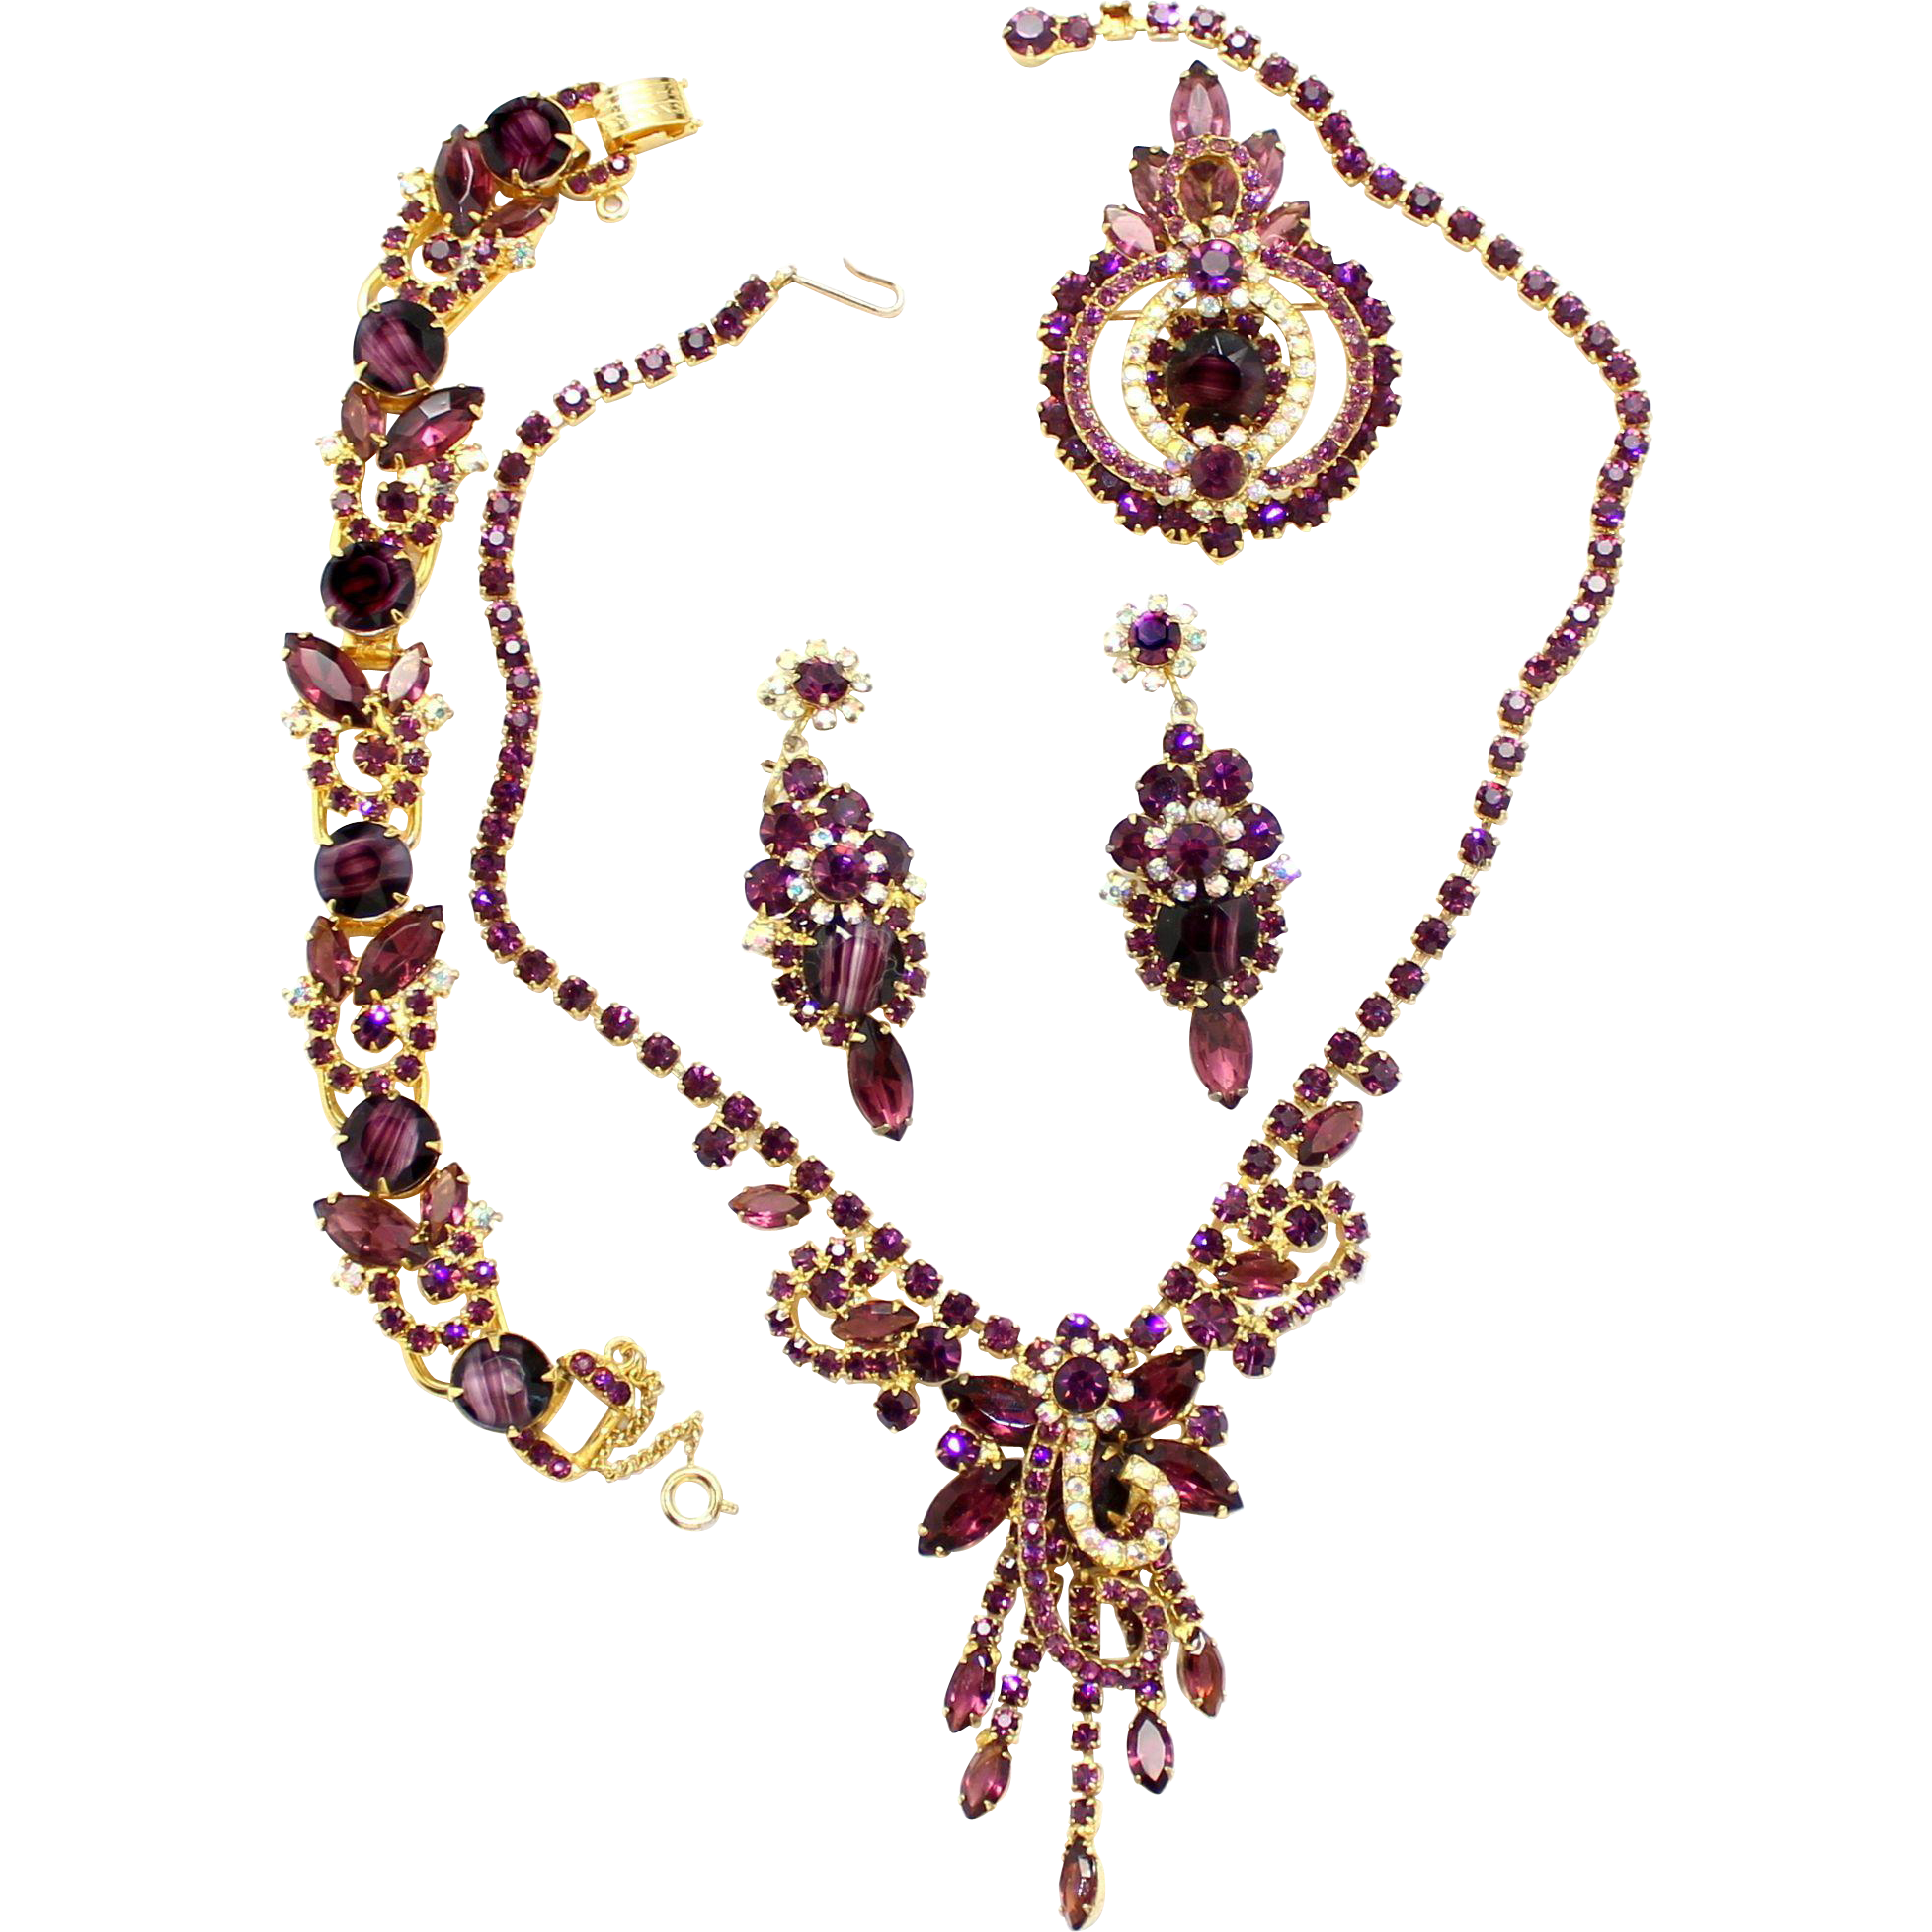 Vintage Juliana (D and E) Book Piece Amethyst Givre Rhinestone Necklace, Bracelet, Brooch, and Dangle Earrings Grand Parure